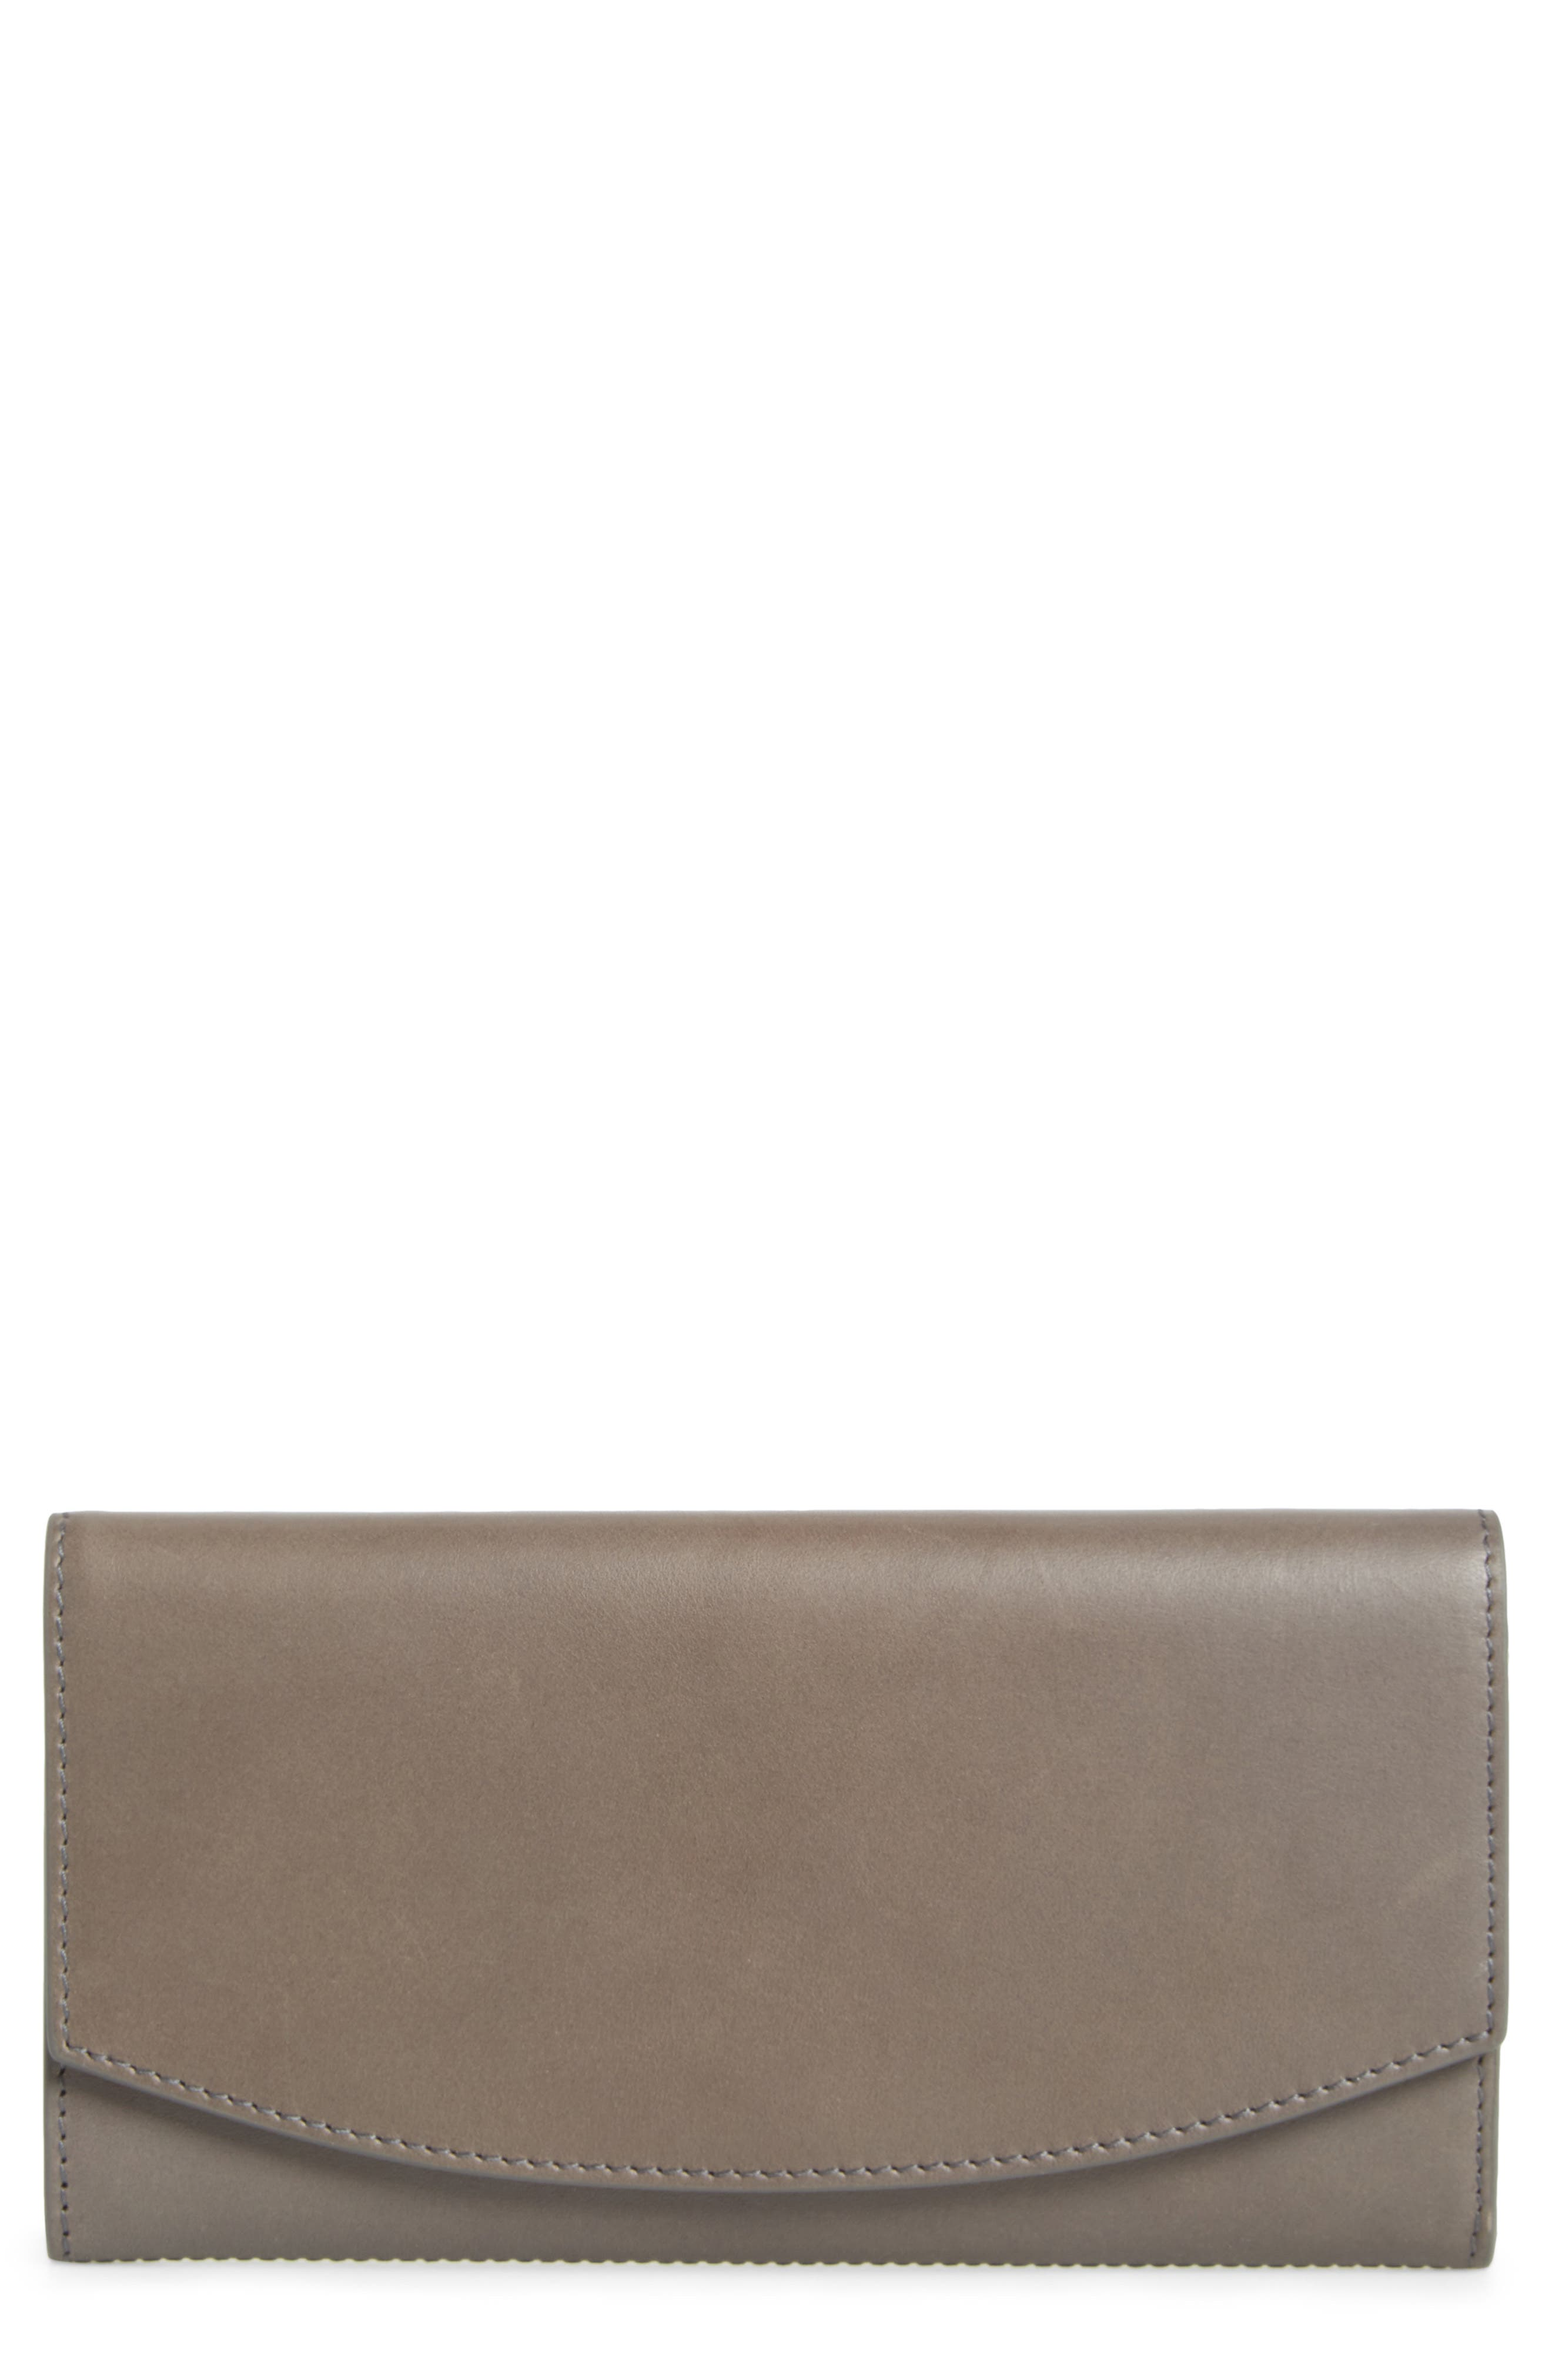 Alternate Image 1 Selected - Skagen Leather Continental Flap Wallet